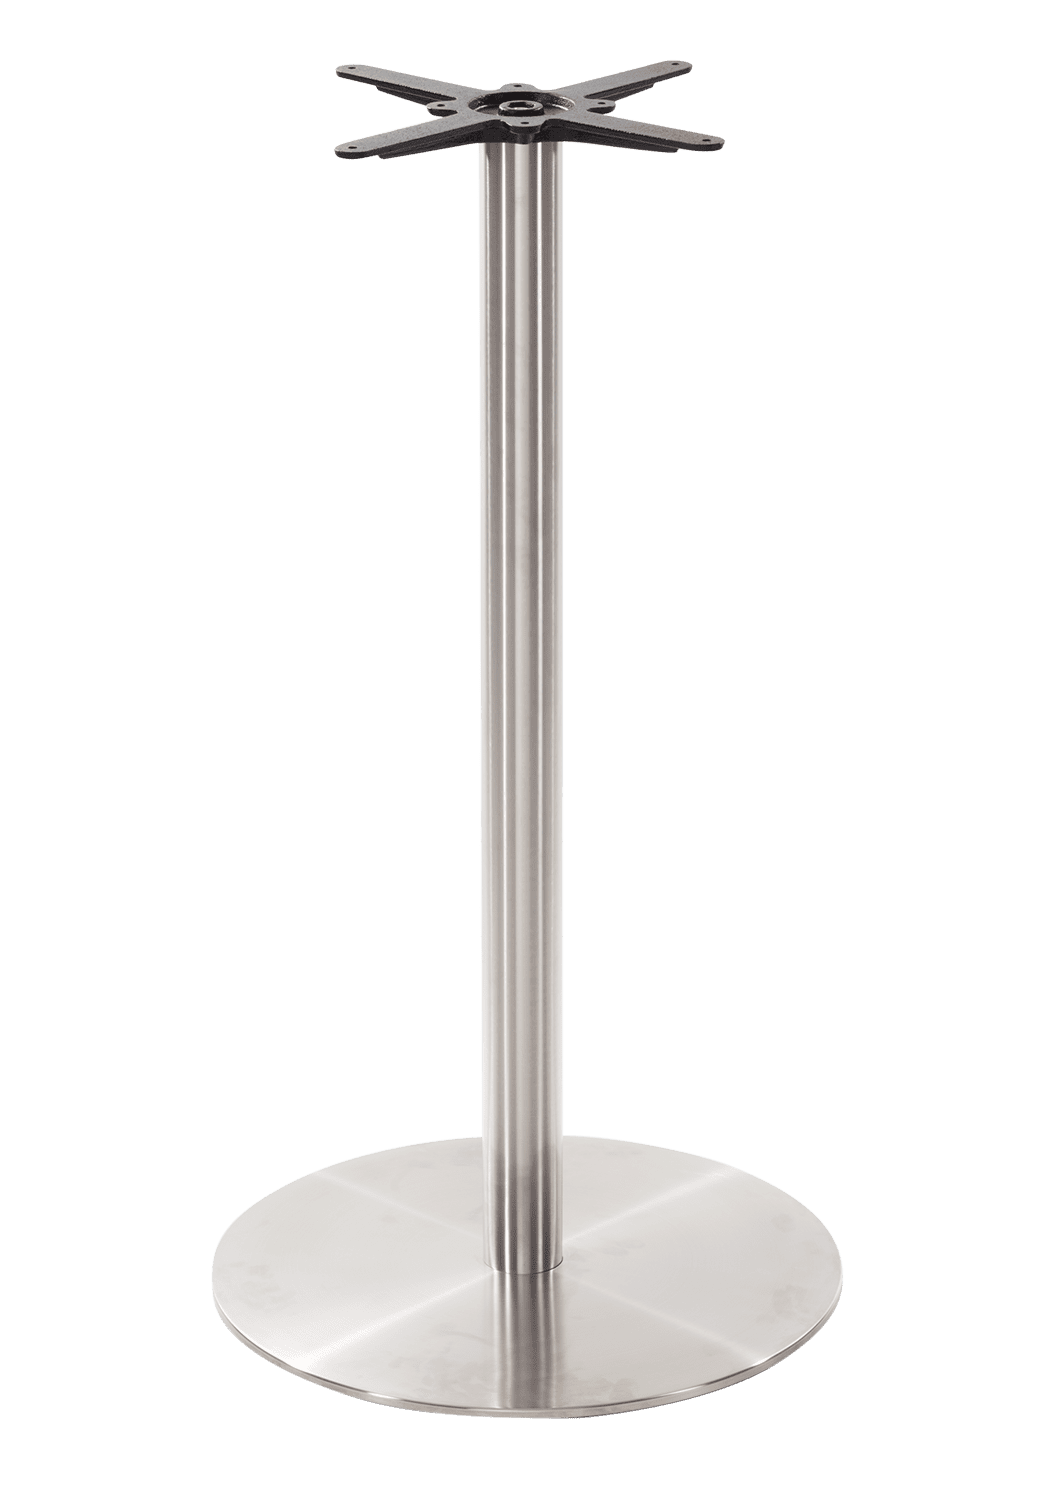 Round stainless steel table base - Large - Poseur height - 1050 mm